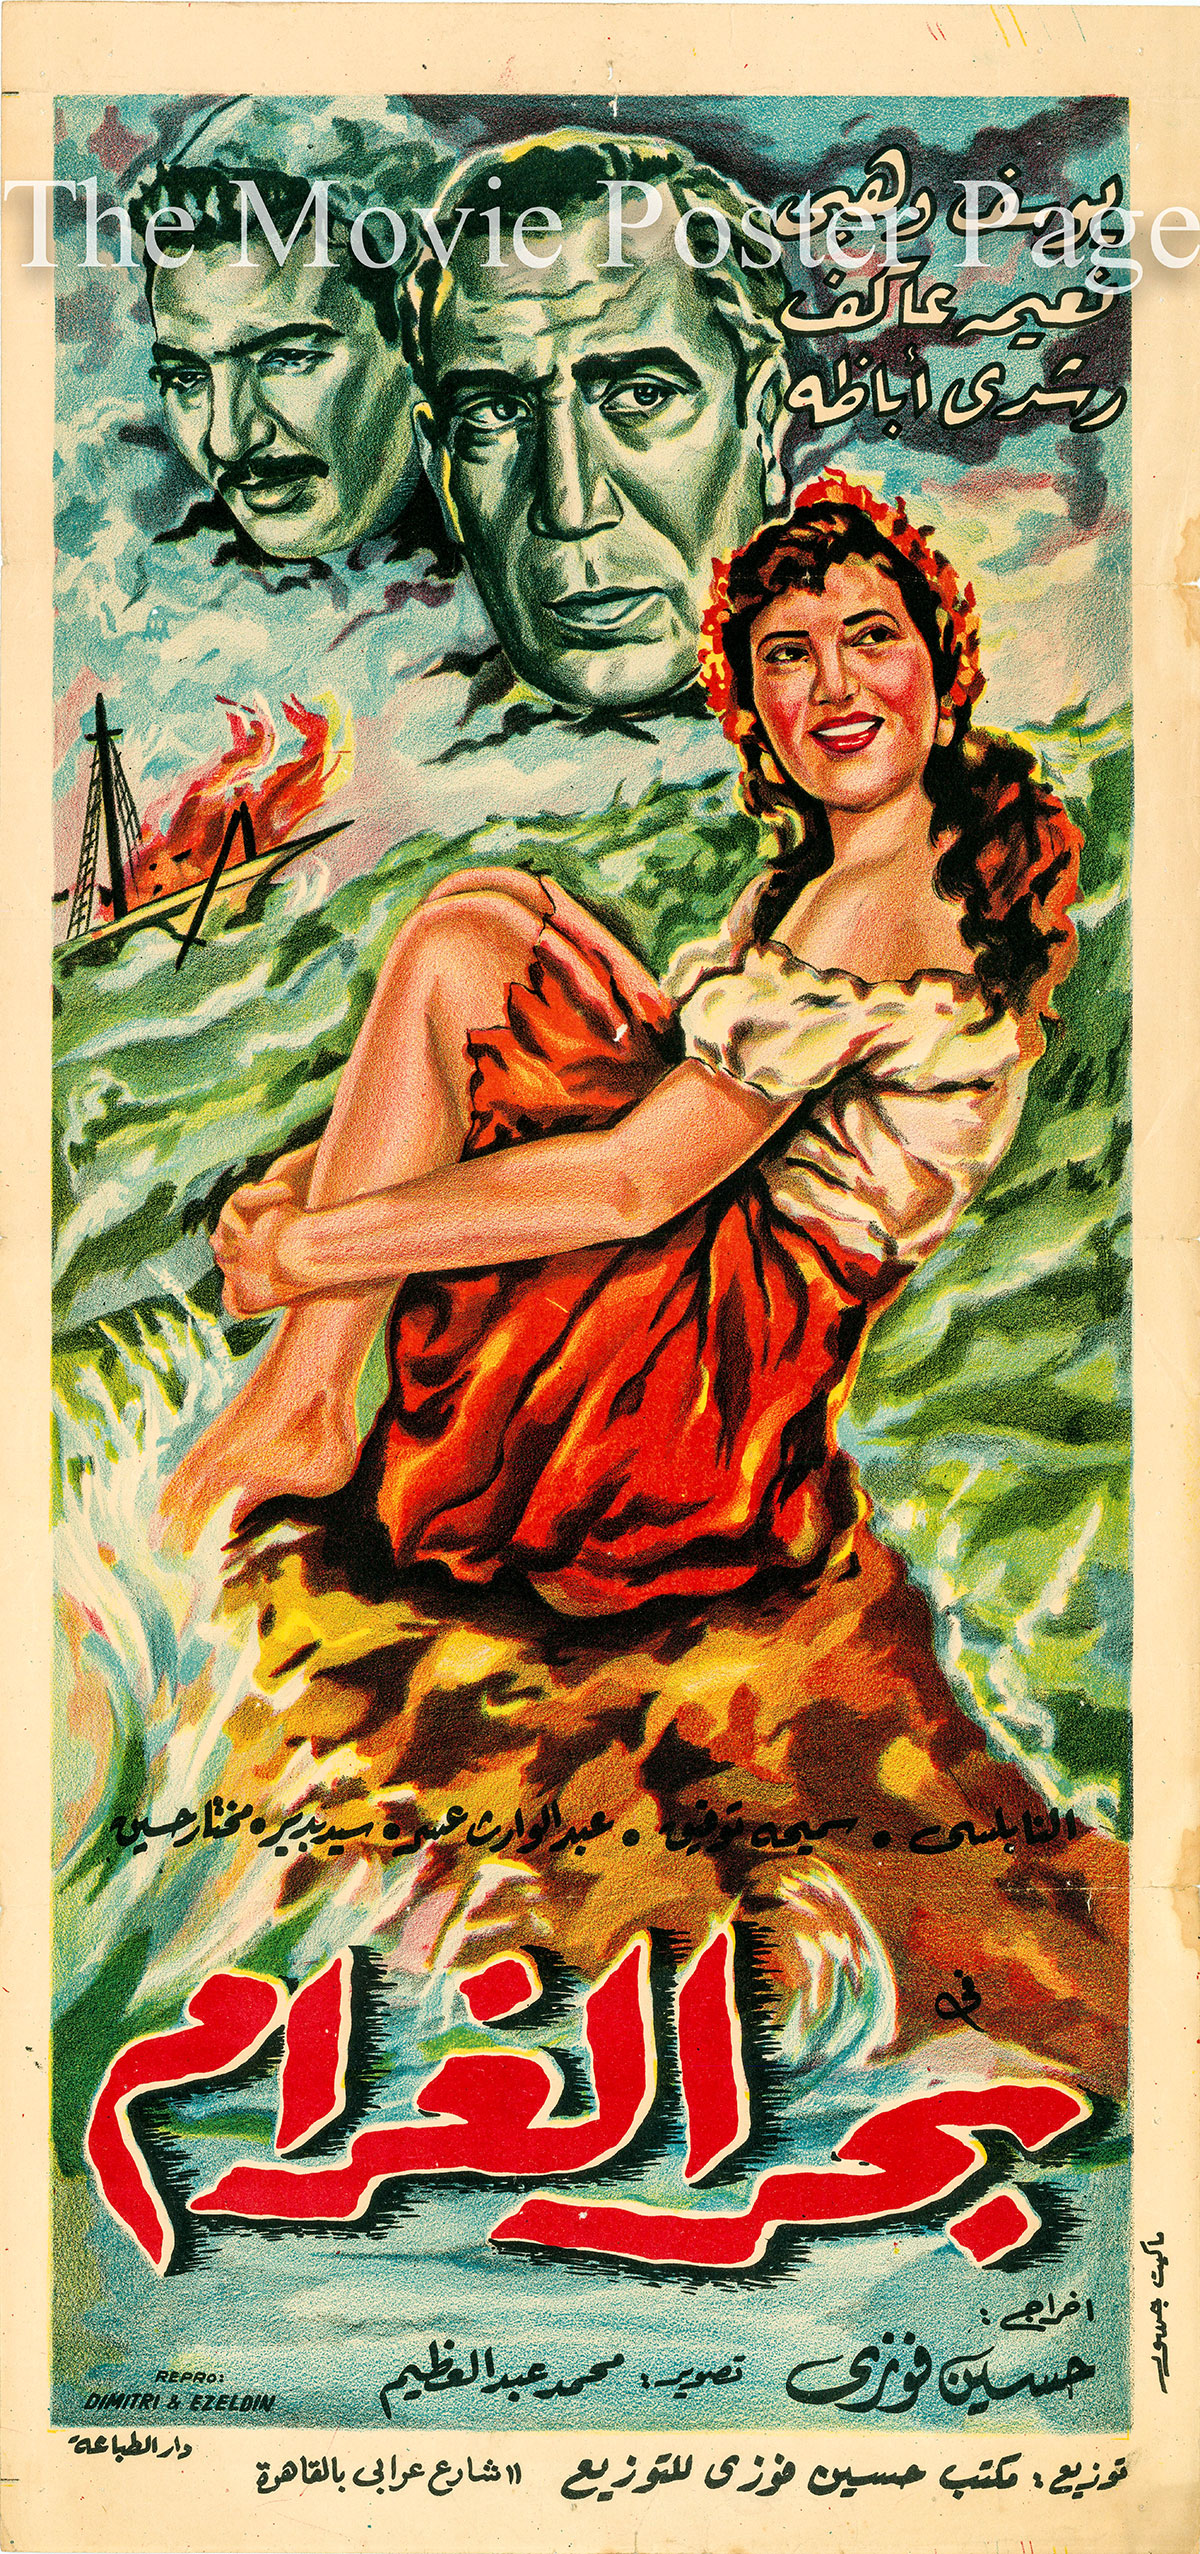 Pictured is an Egyptian locandania film poster for the 1956 Hussein Fawzi film Sea of Love starring Youssef Wahby.